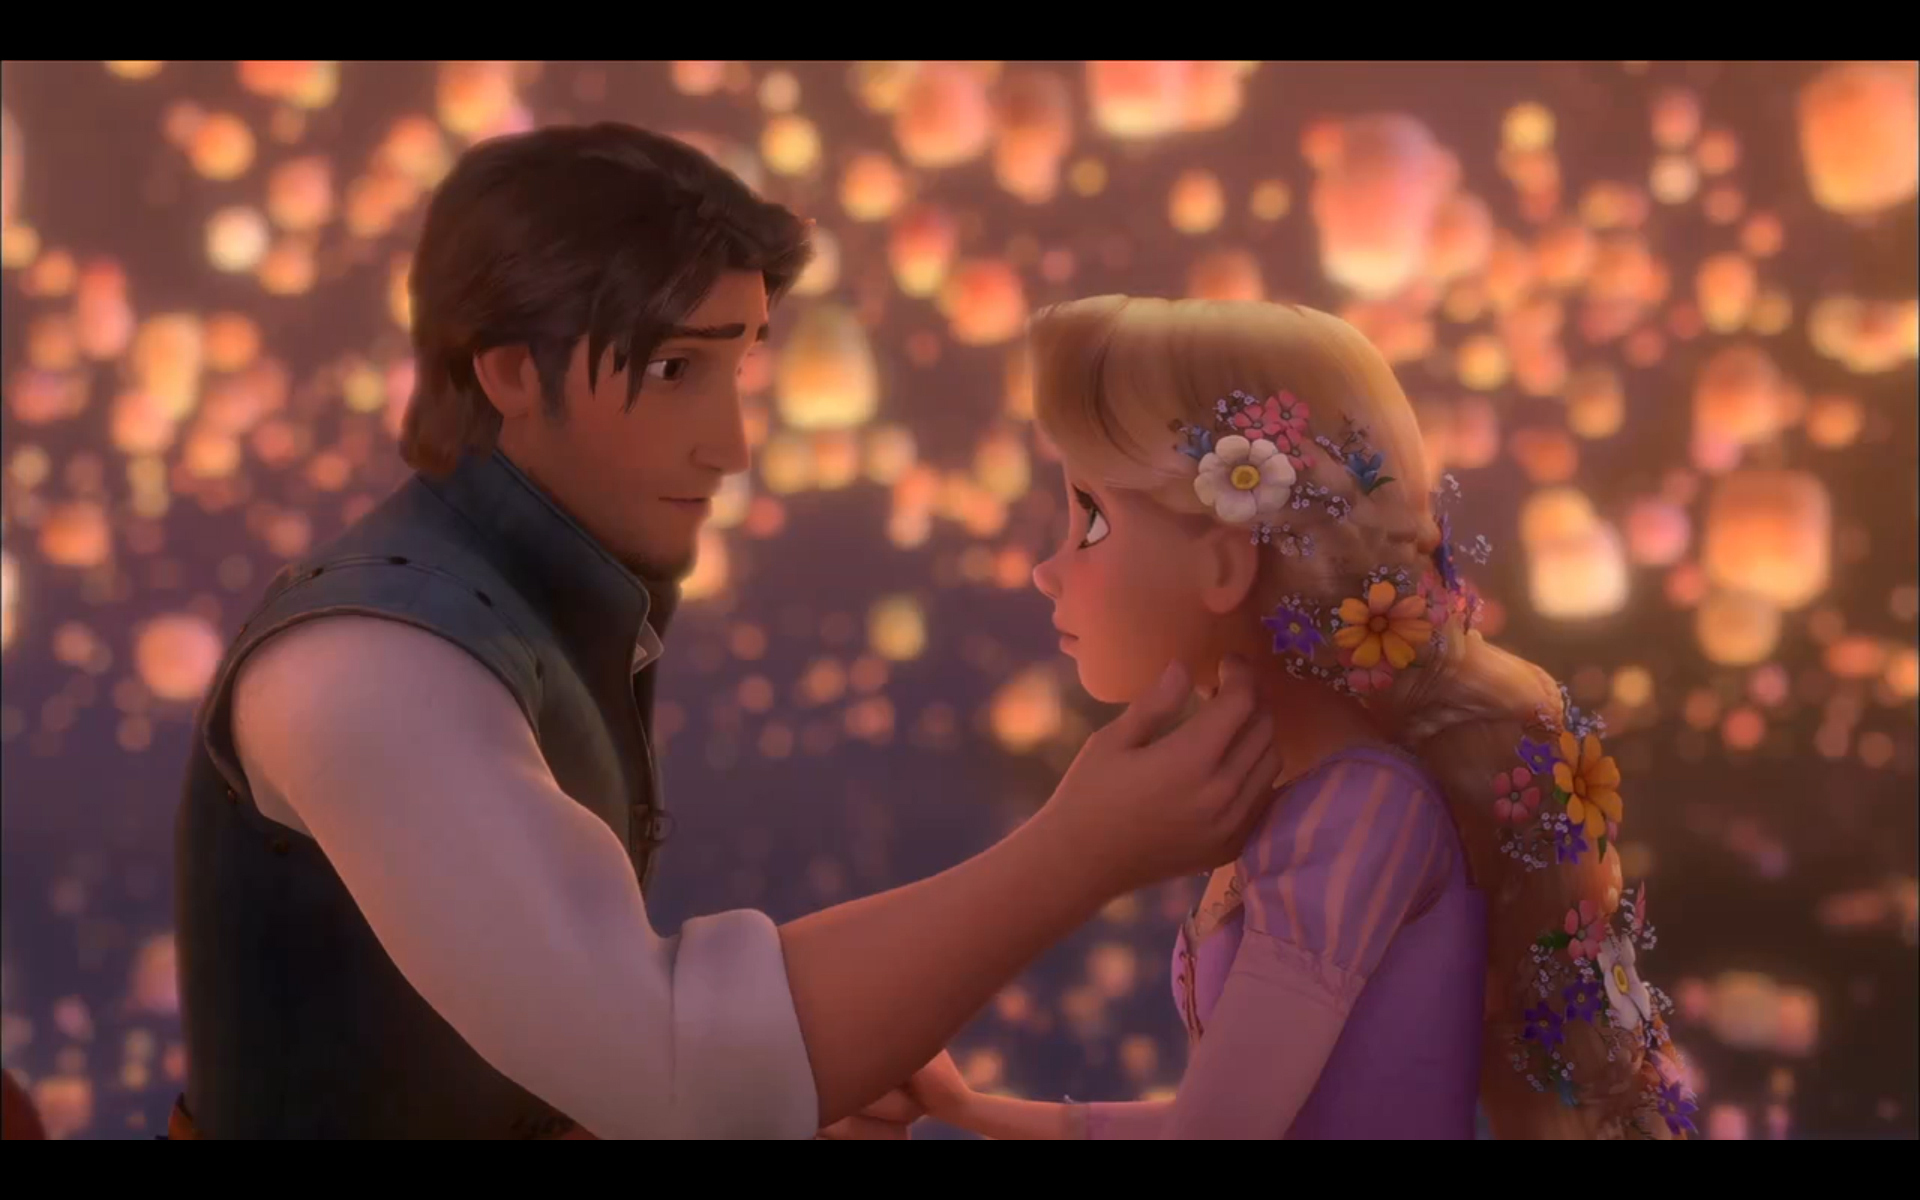 https://i0.wp.com/images4.fanpop.com/image/photos/17000000/Rapunzel-and-Flynn-tangled-17057916-1920-1200.jpg